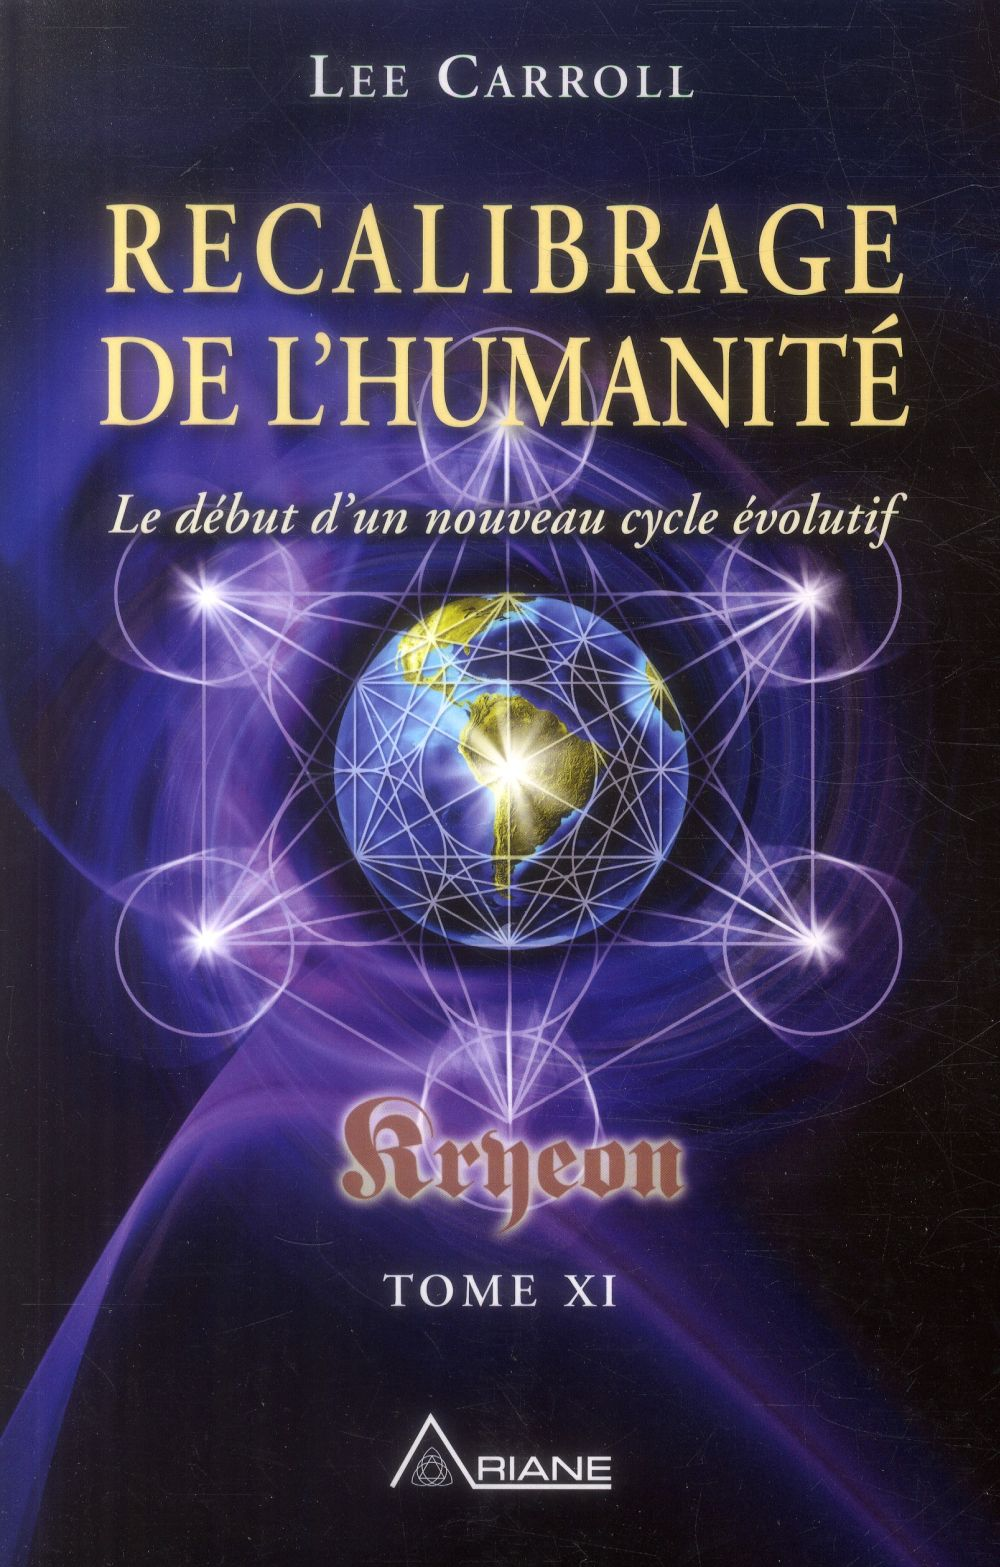 RECALIBRAGE DE L'HUMANITE - KRYEON T.11 - LE DEBUT D'UN NOUVEAU CYCLE EVOLUTIF